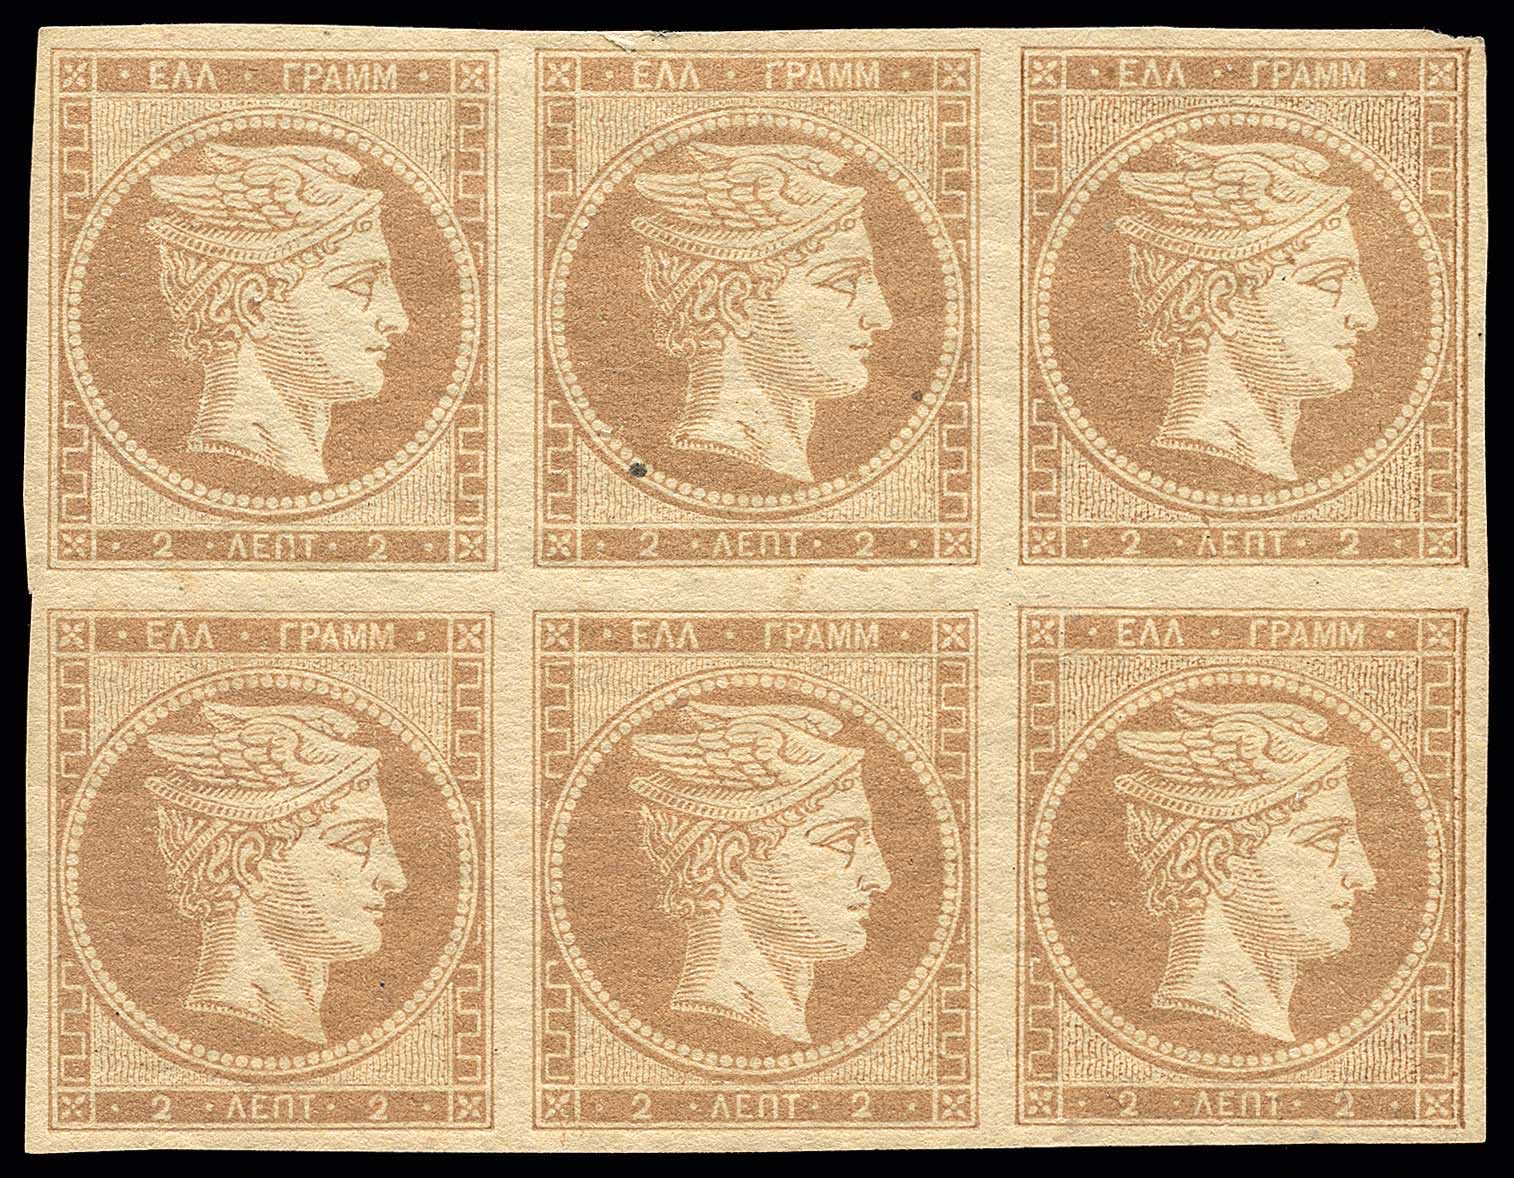 Lot 98 - -  LARGE HERMES HEAD 1861/1862 athens provisional printings -  A. Karamitsos Public & LIVE Bid Auction 651. Large Hermes Heads Exceptional Stamps from Great Collections